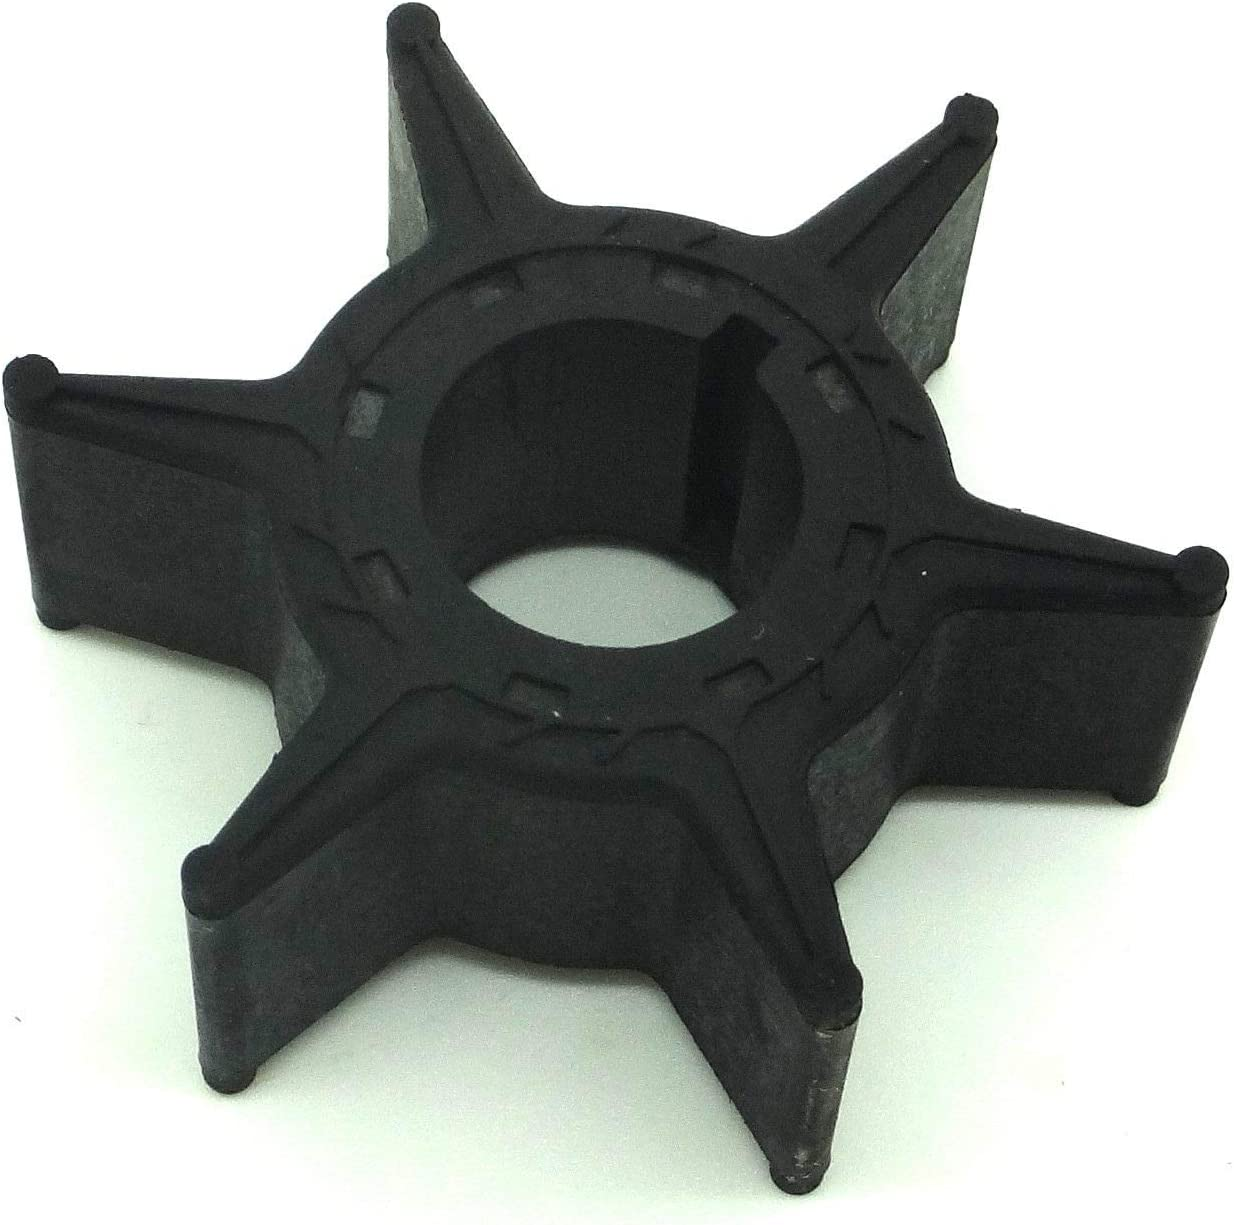 Boat Motor Water Pump Impeller 6H4-44352-02 for Yamaha 20HP 25HP 30HP 40HP 50HP